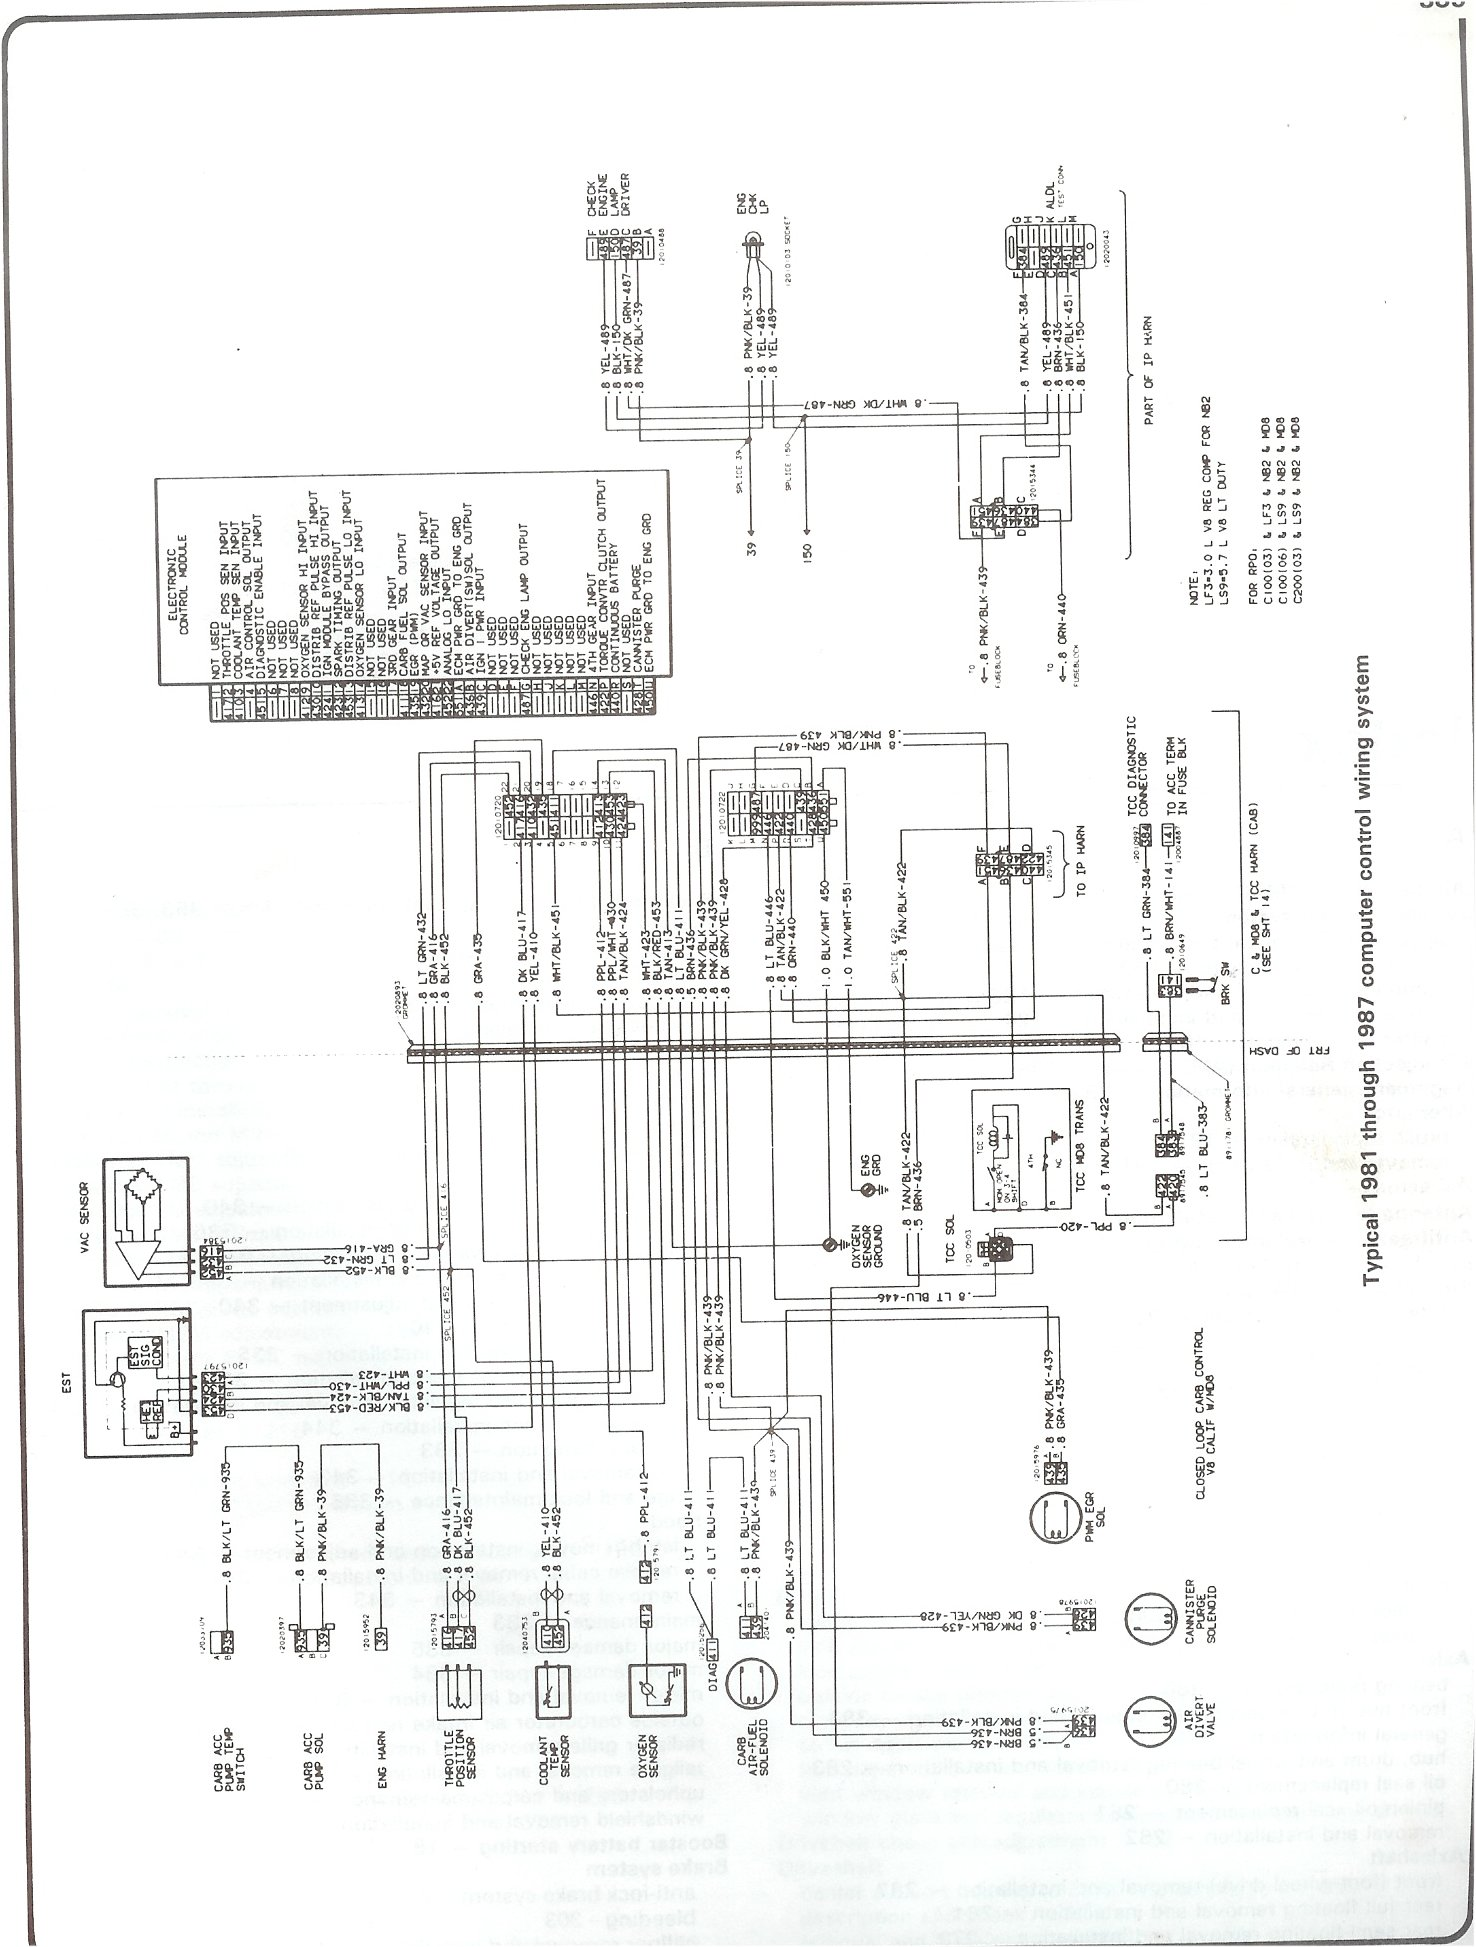 Stereo Wiring Diagram For Chevy Cheyeene 79